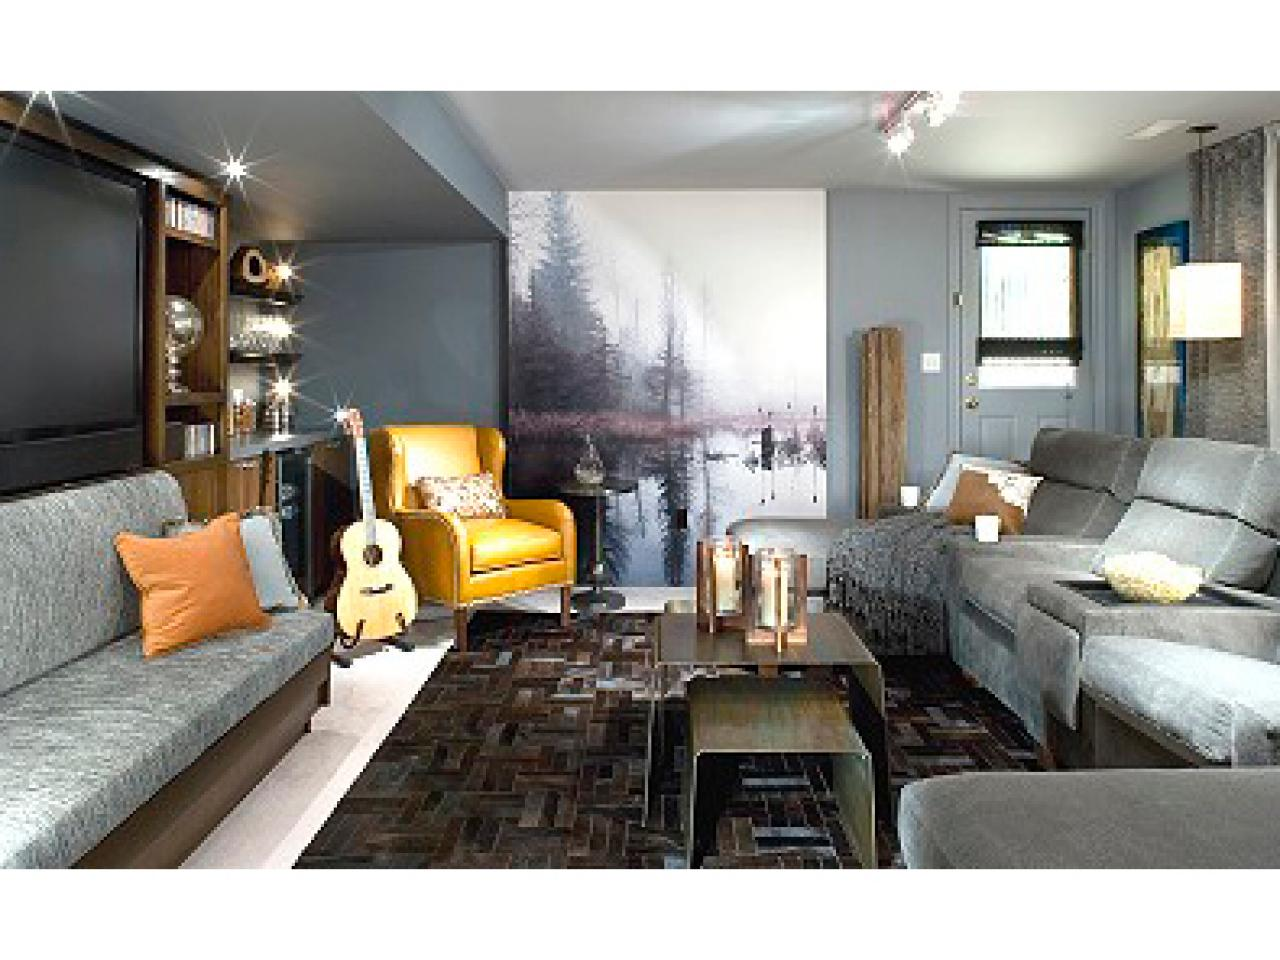 Men 39 s den redesign hgtv for Redesign living room ideas